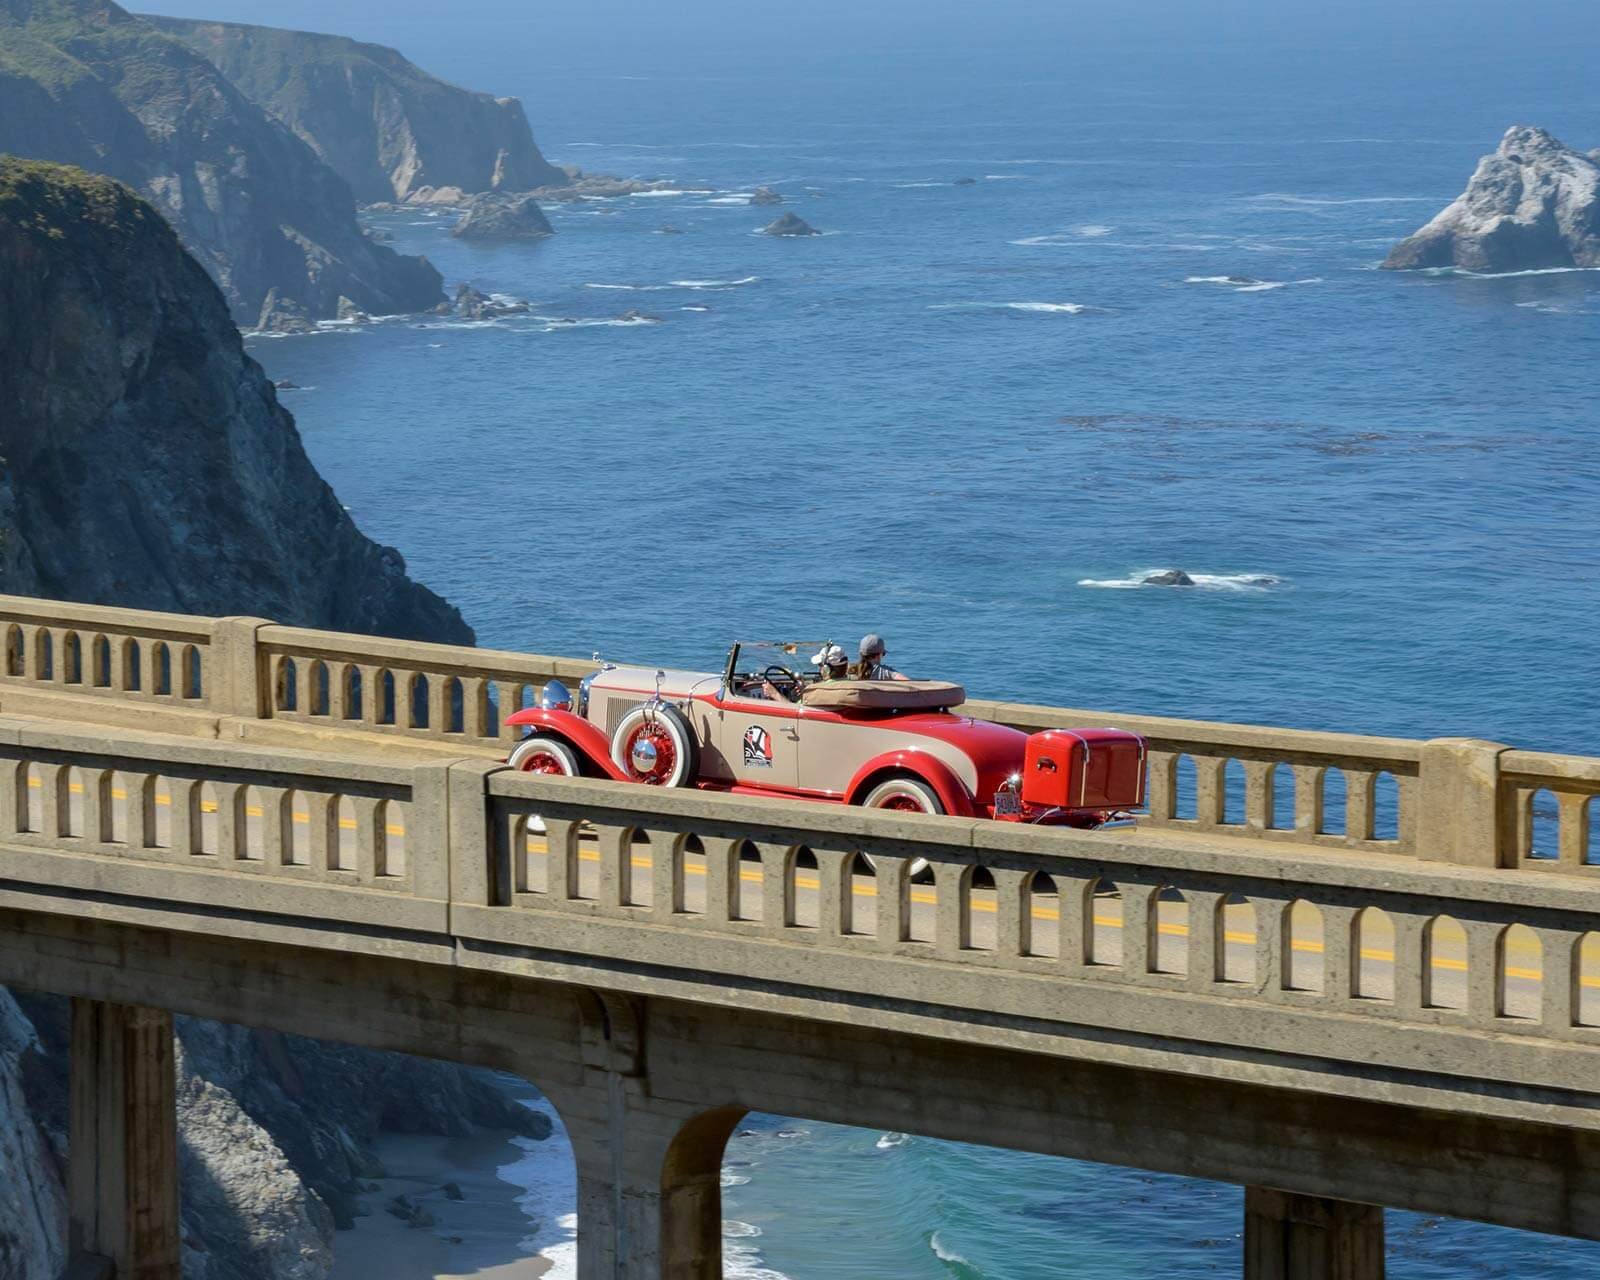 The Pebble Beach Tour d'Elegance driving across the Bixby Bridge in Big Sur, CA.